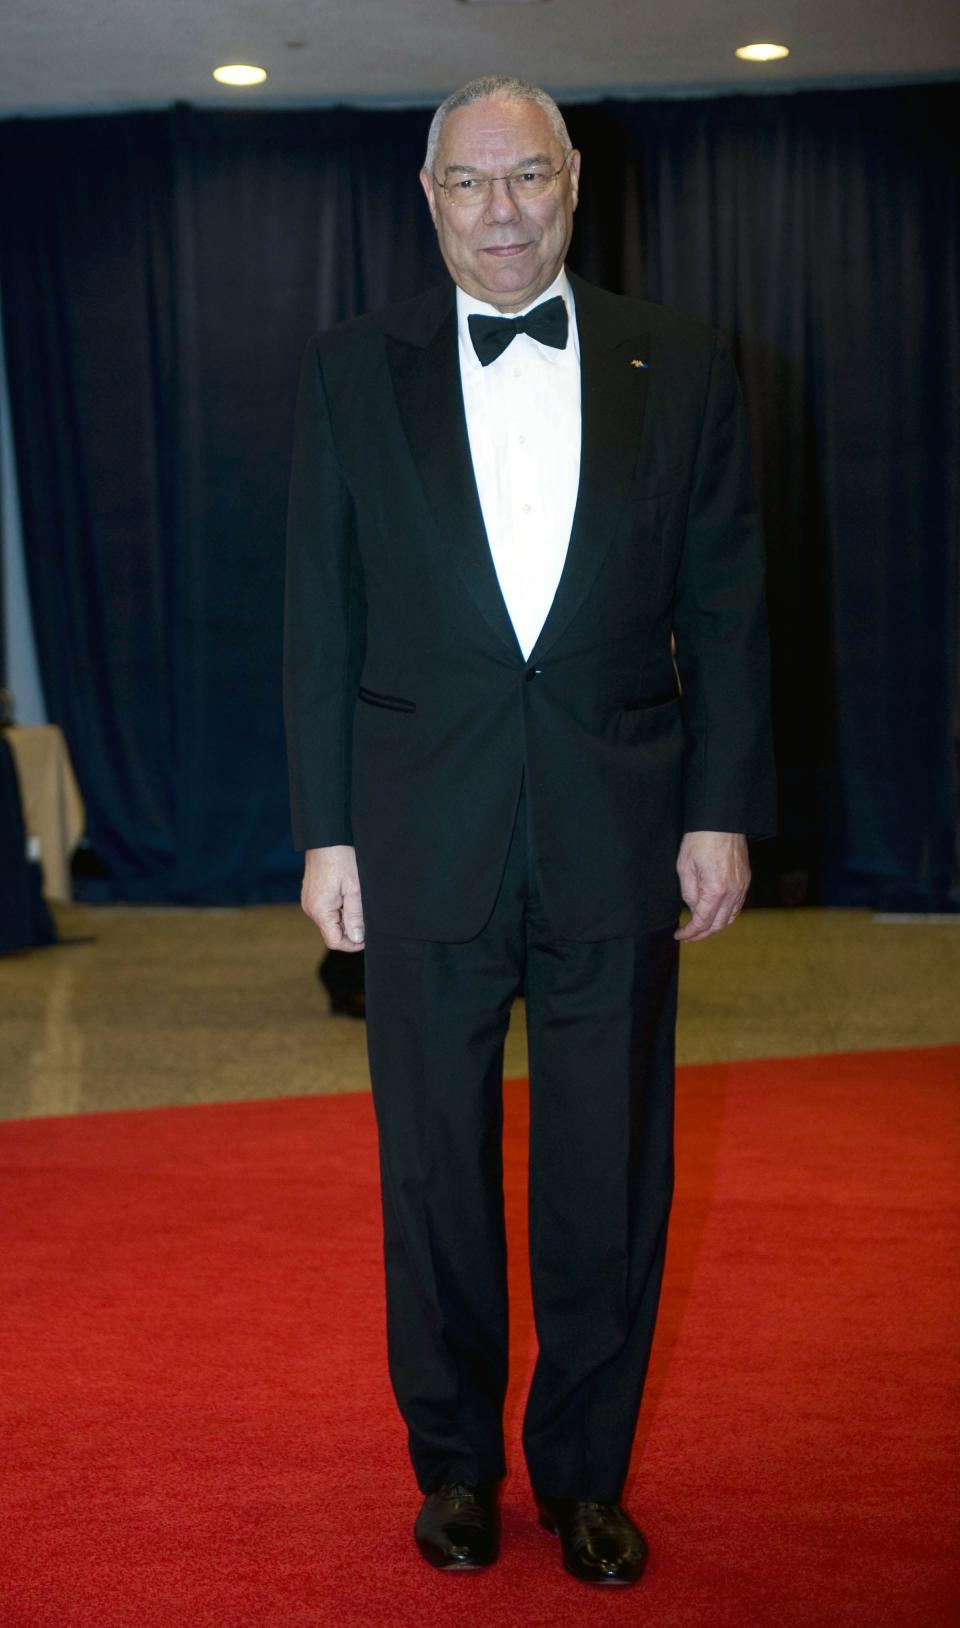 Former Secretary of State Colin Powell arrives at the White House Correspondents' Association Dinner on Saturday, April 28, 2012 in Washington.  (AP Photo/Kevin Wolf)